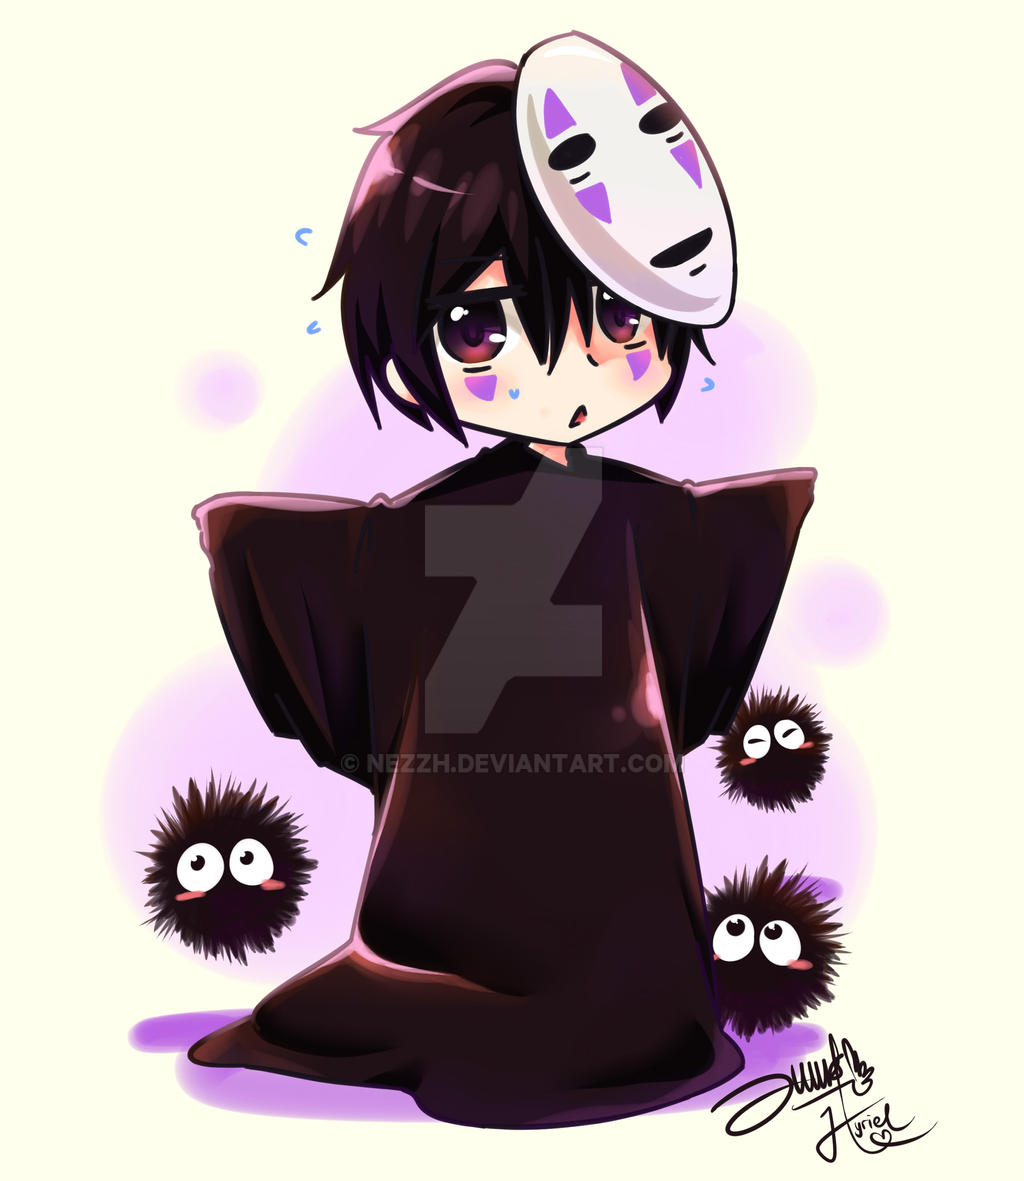 chibi noface by nezzh on deviantart